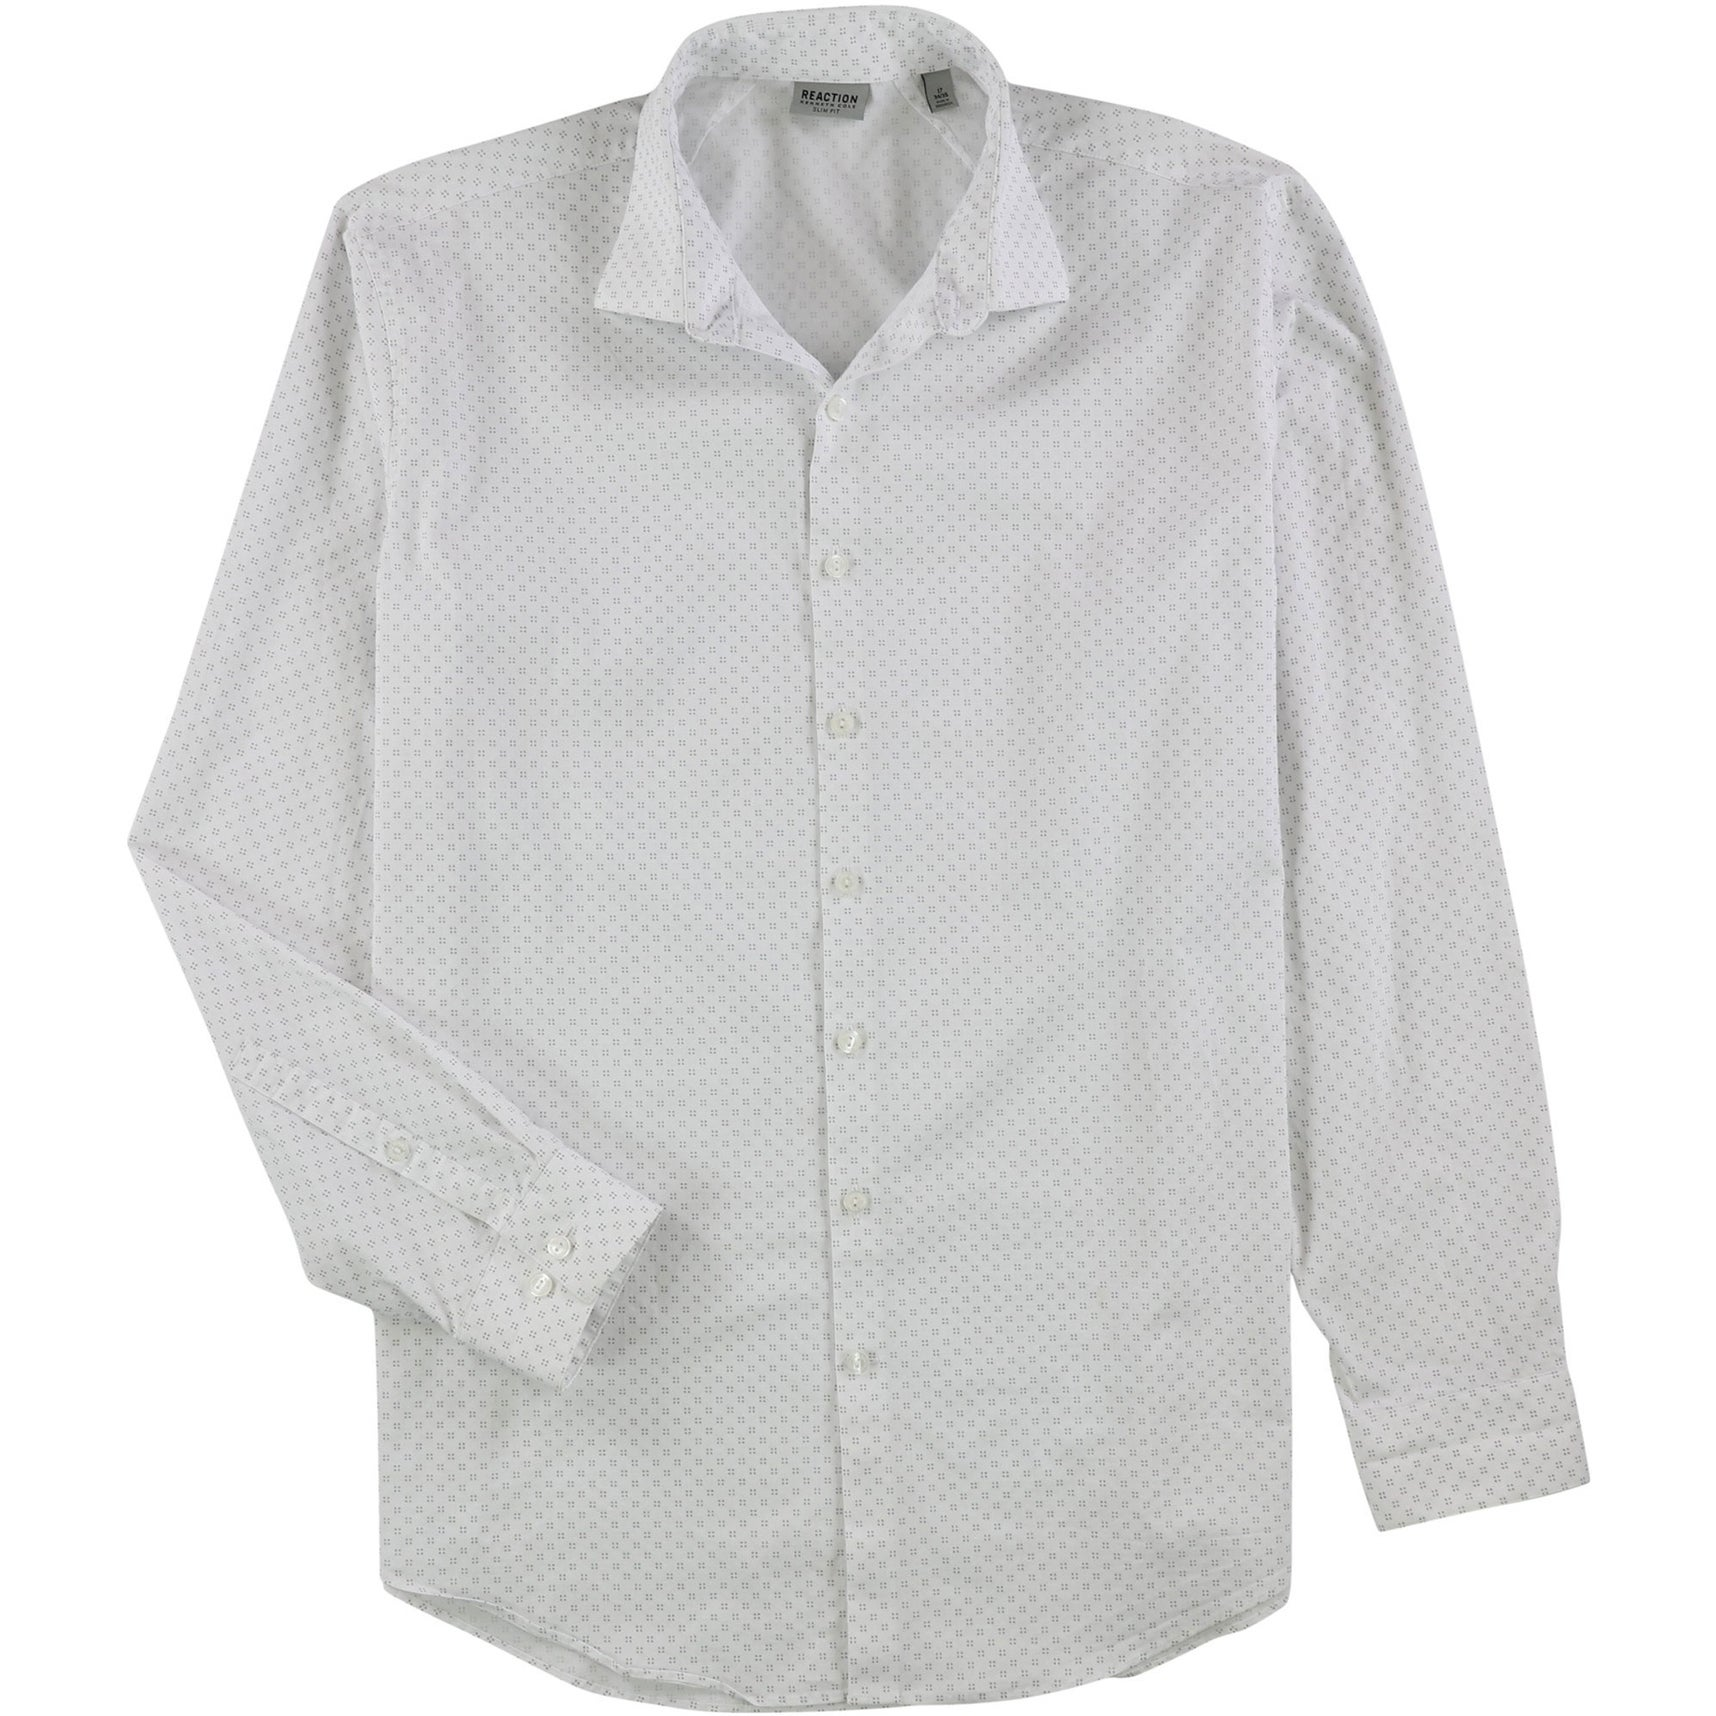 Kenneth Cole New York Mens Long Sleeve Business Wear Button-Down Shirt BHFO 3036